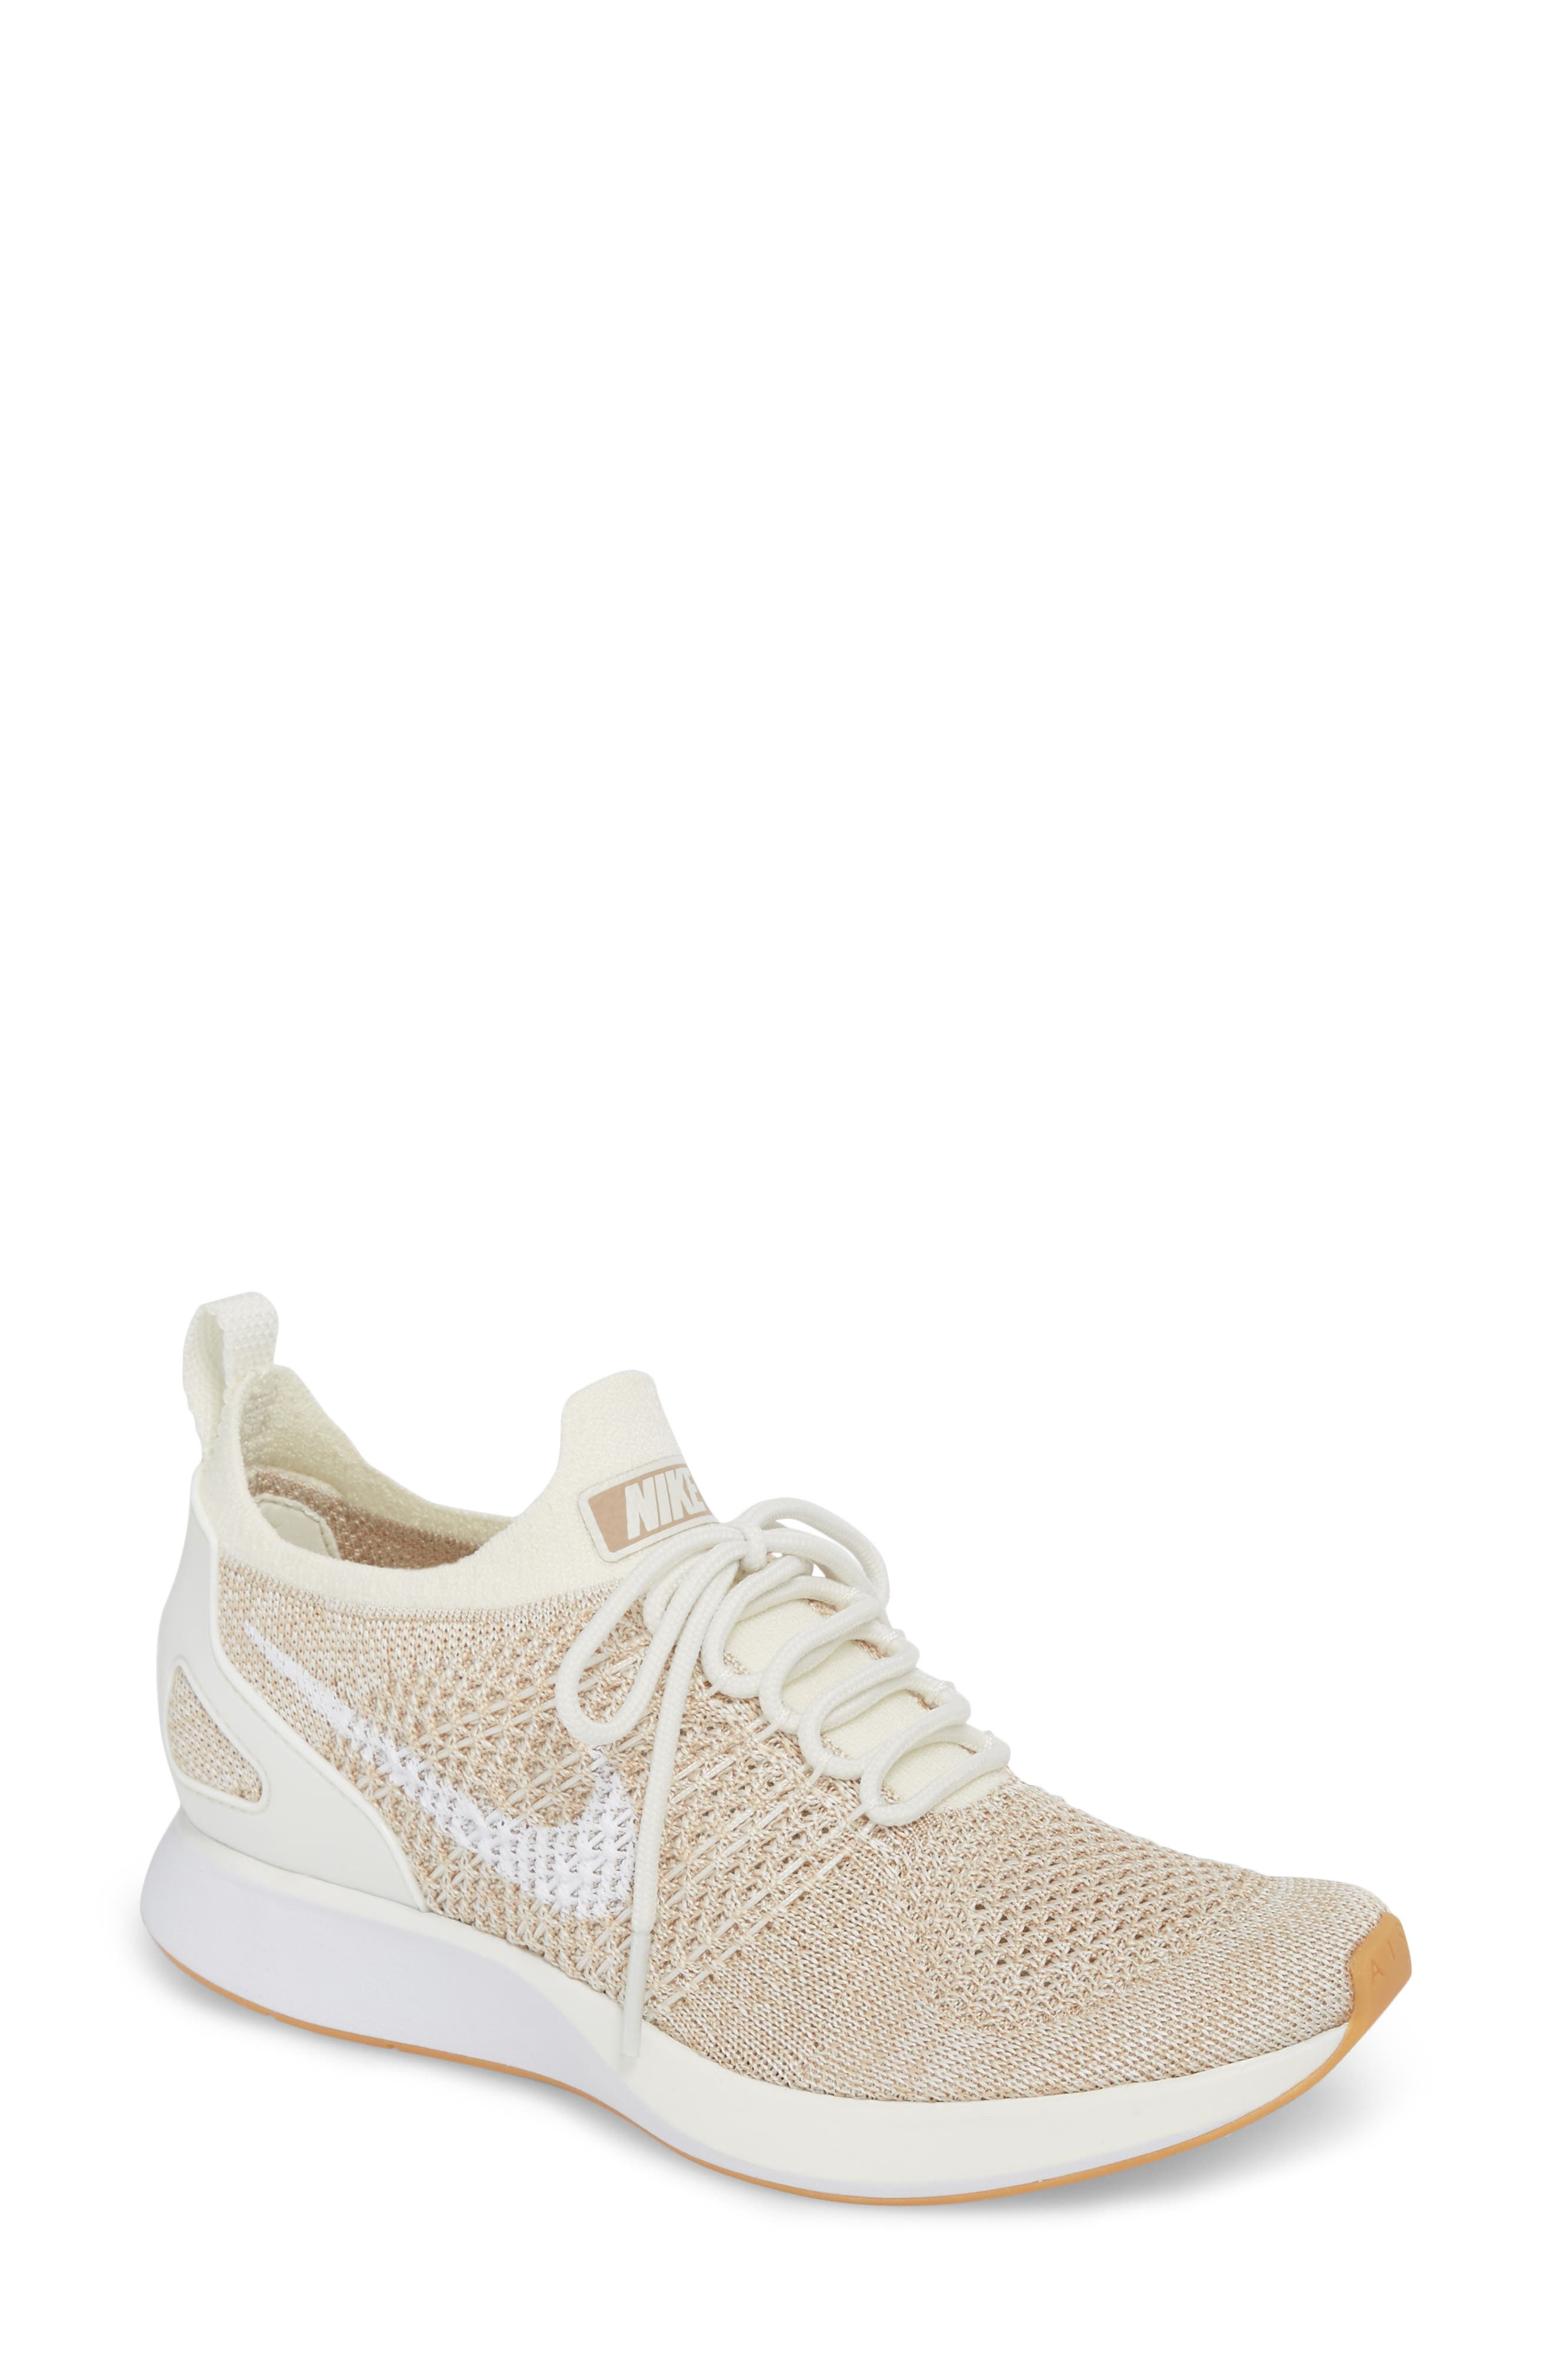 Air Zoom Mariah Flyknit Racer Sneaker,                         Main,                         color, SAIL/ WHITE/ SAND